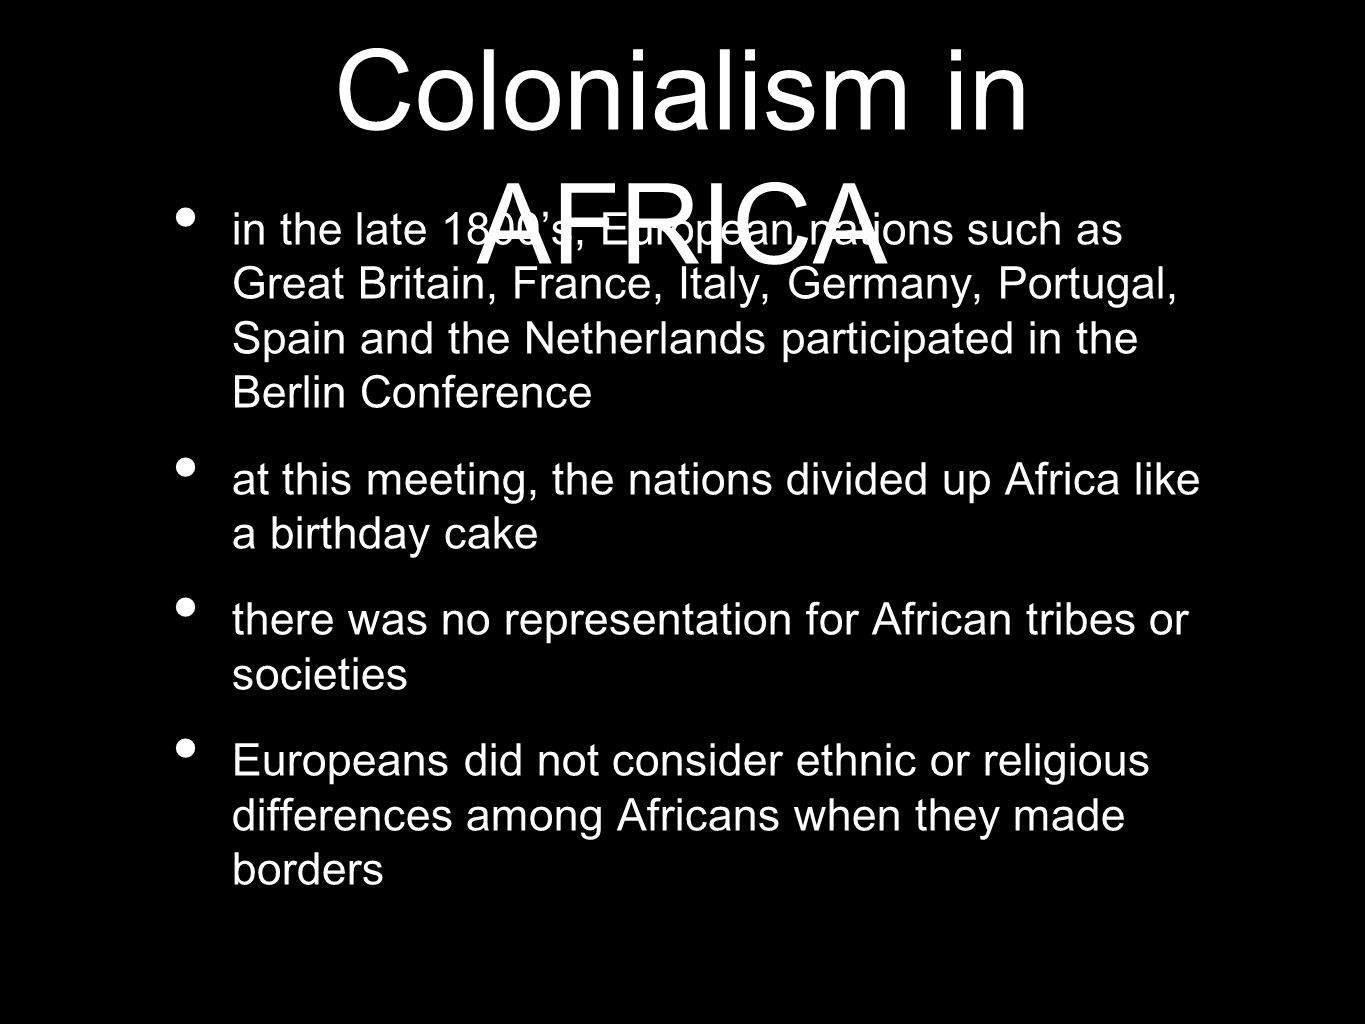 in the late 1800's, European nations such as Great Britain, France, Italy, Germany, Portugal, Spain and the Netherlands participated in the Berlin Conference at this meeting, the nations divided up Africa like a birthday cake there was no representation for African tribes or societies Europeans did not consider ethnic or religious differences among Africans when they made borders